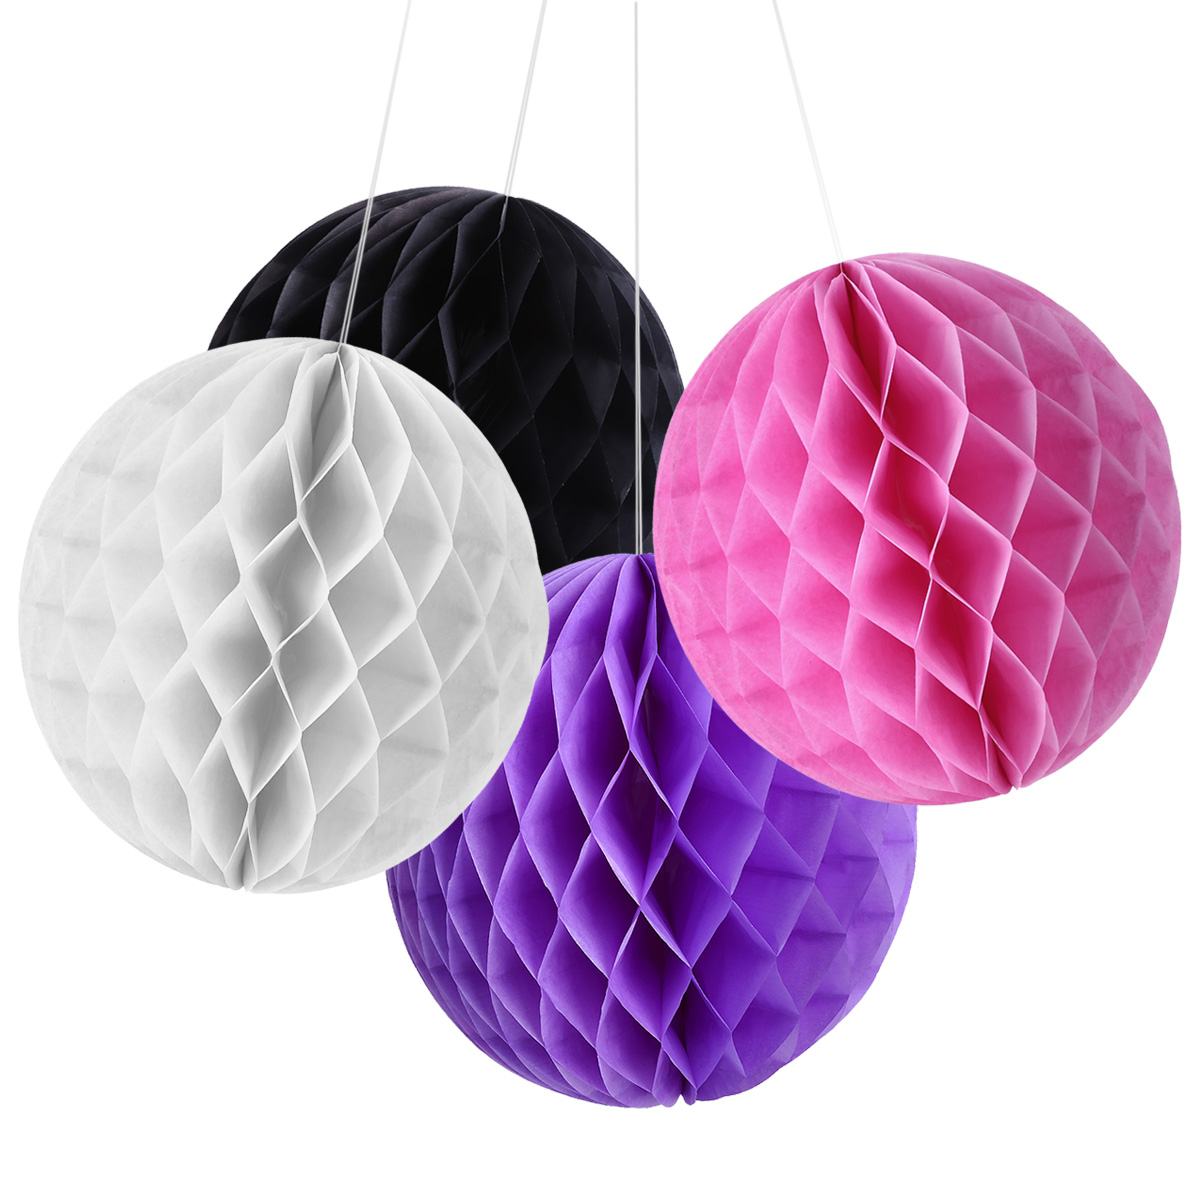 8x 25cm honeycomb ball paper lanterns hanging wedding party decorations black ebay - Hanging paper balls decorations ...